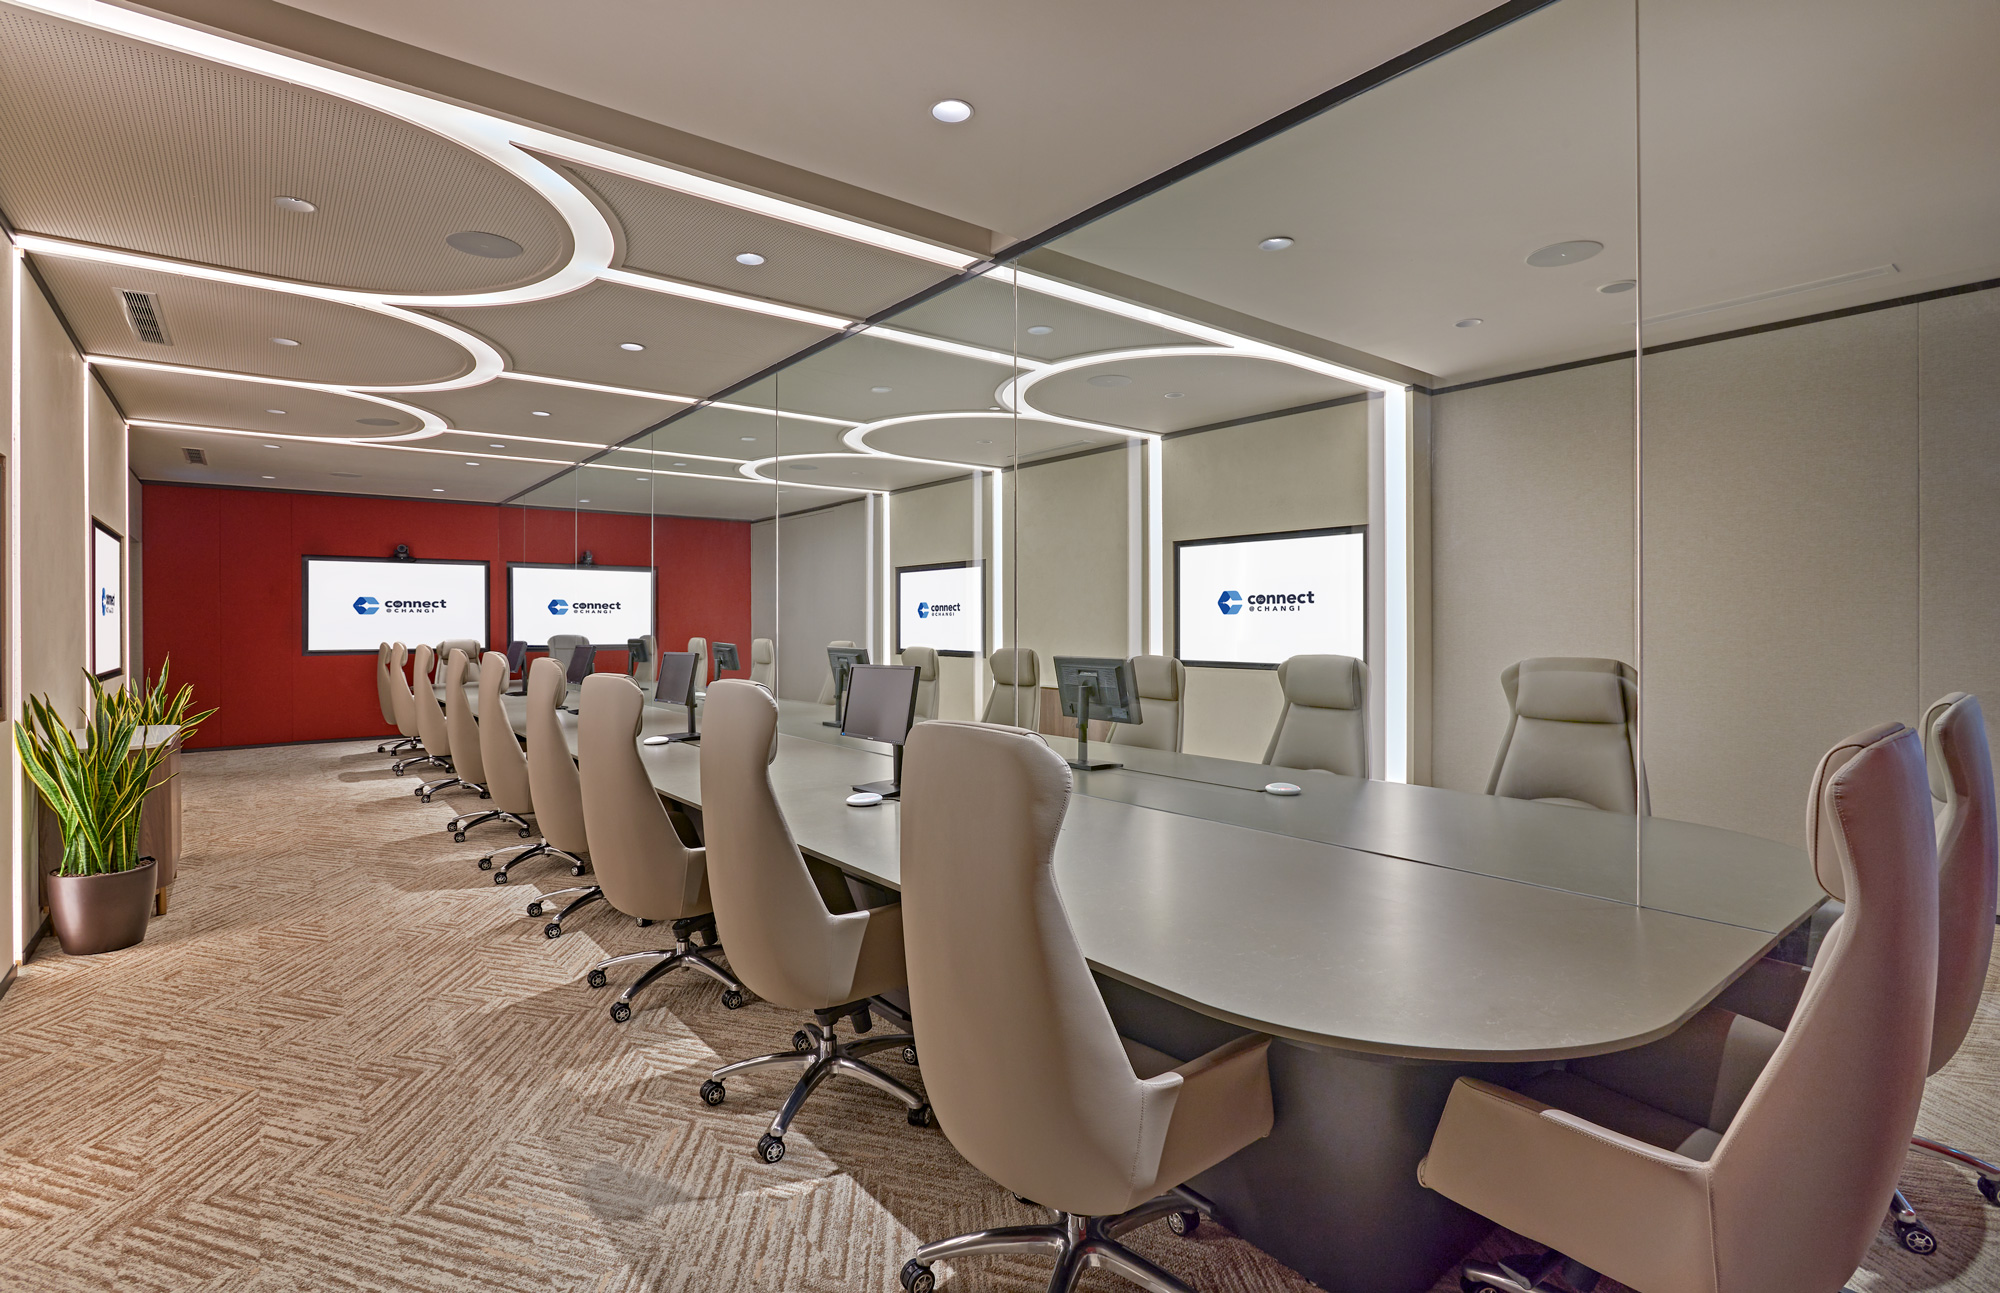 Meetings between business travellers and people from Singapore can only take place in special meeting rooms with air-tight glass panels.